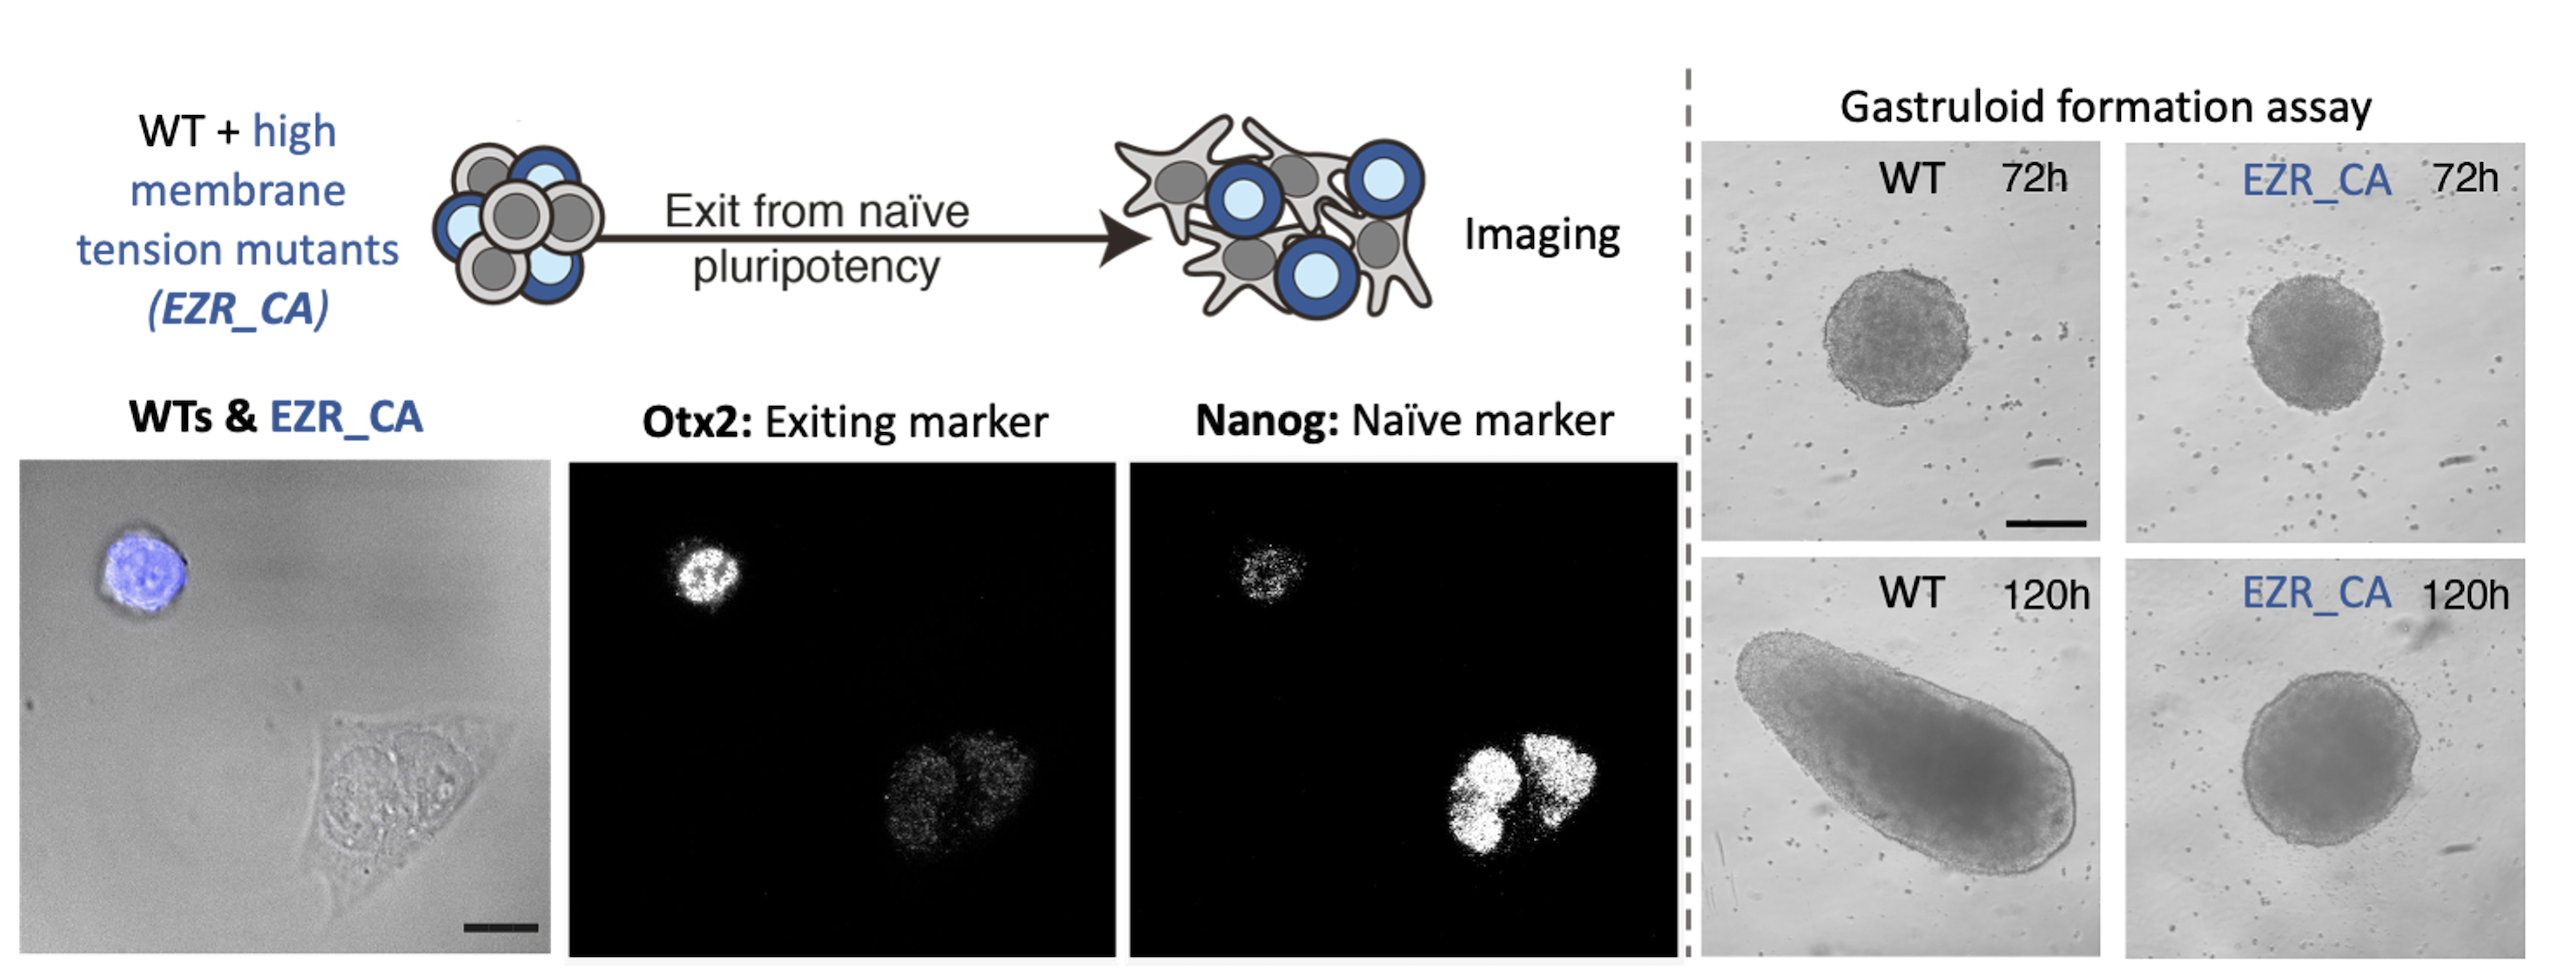 Figure 3: Preventing the decrease in membrane tension results in early developmental defects. On the left is depicted an immunofluorescence assay in which we mix WT and mutant cells (which maintain high membrane tension during differentiation). On the right are pictures of our gastruloids formation assay, which shows that maintaining high membrane tension results in major morphological defects.